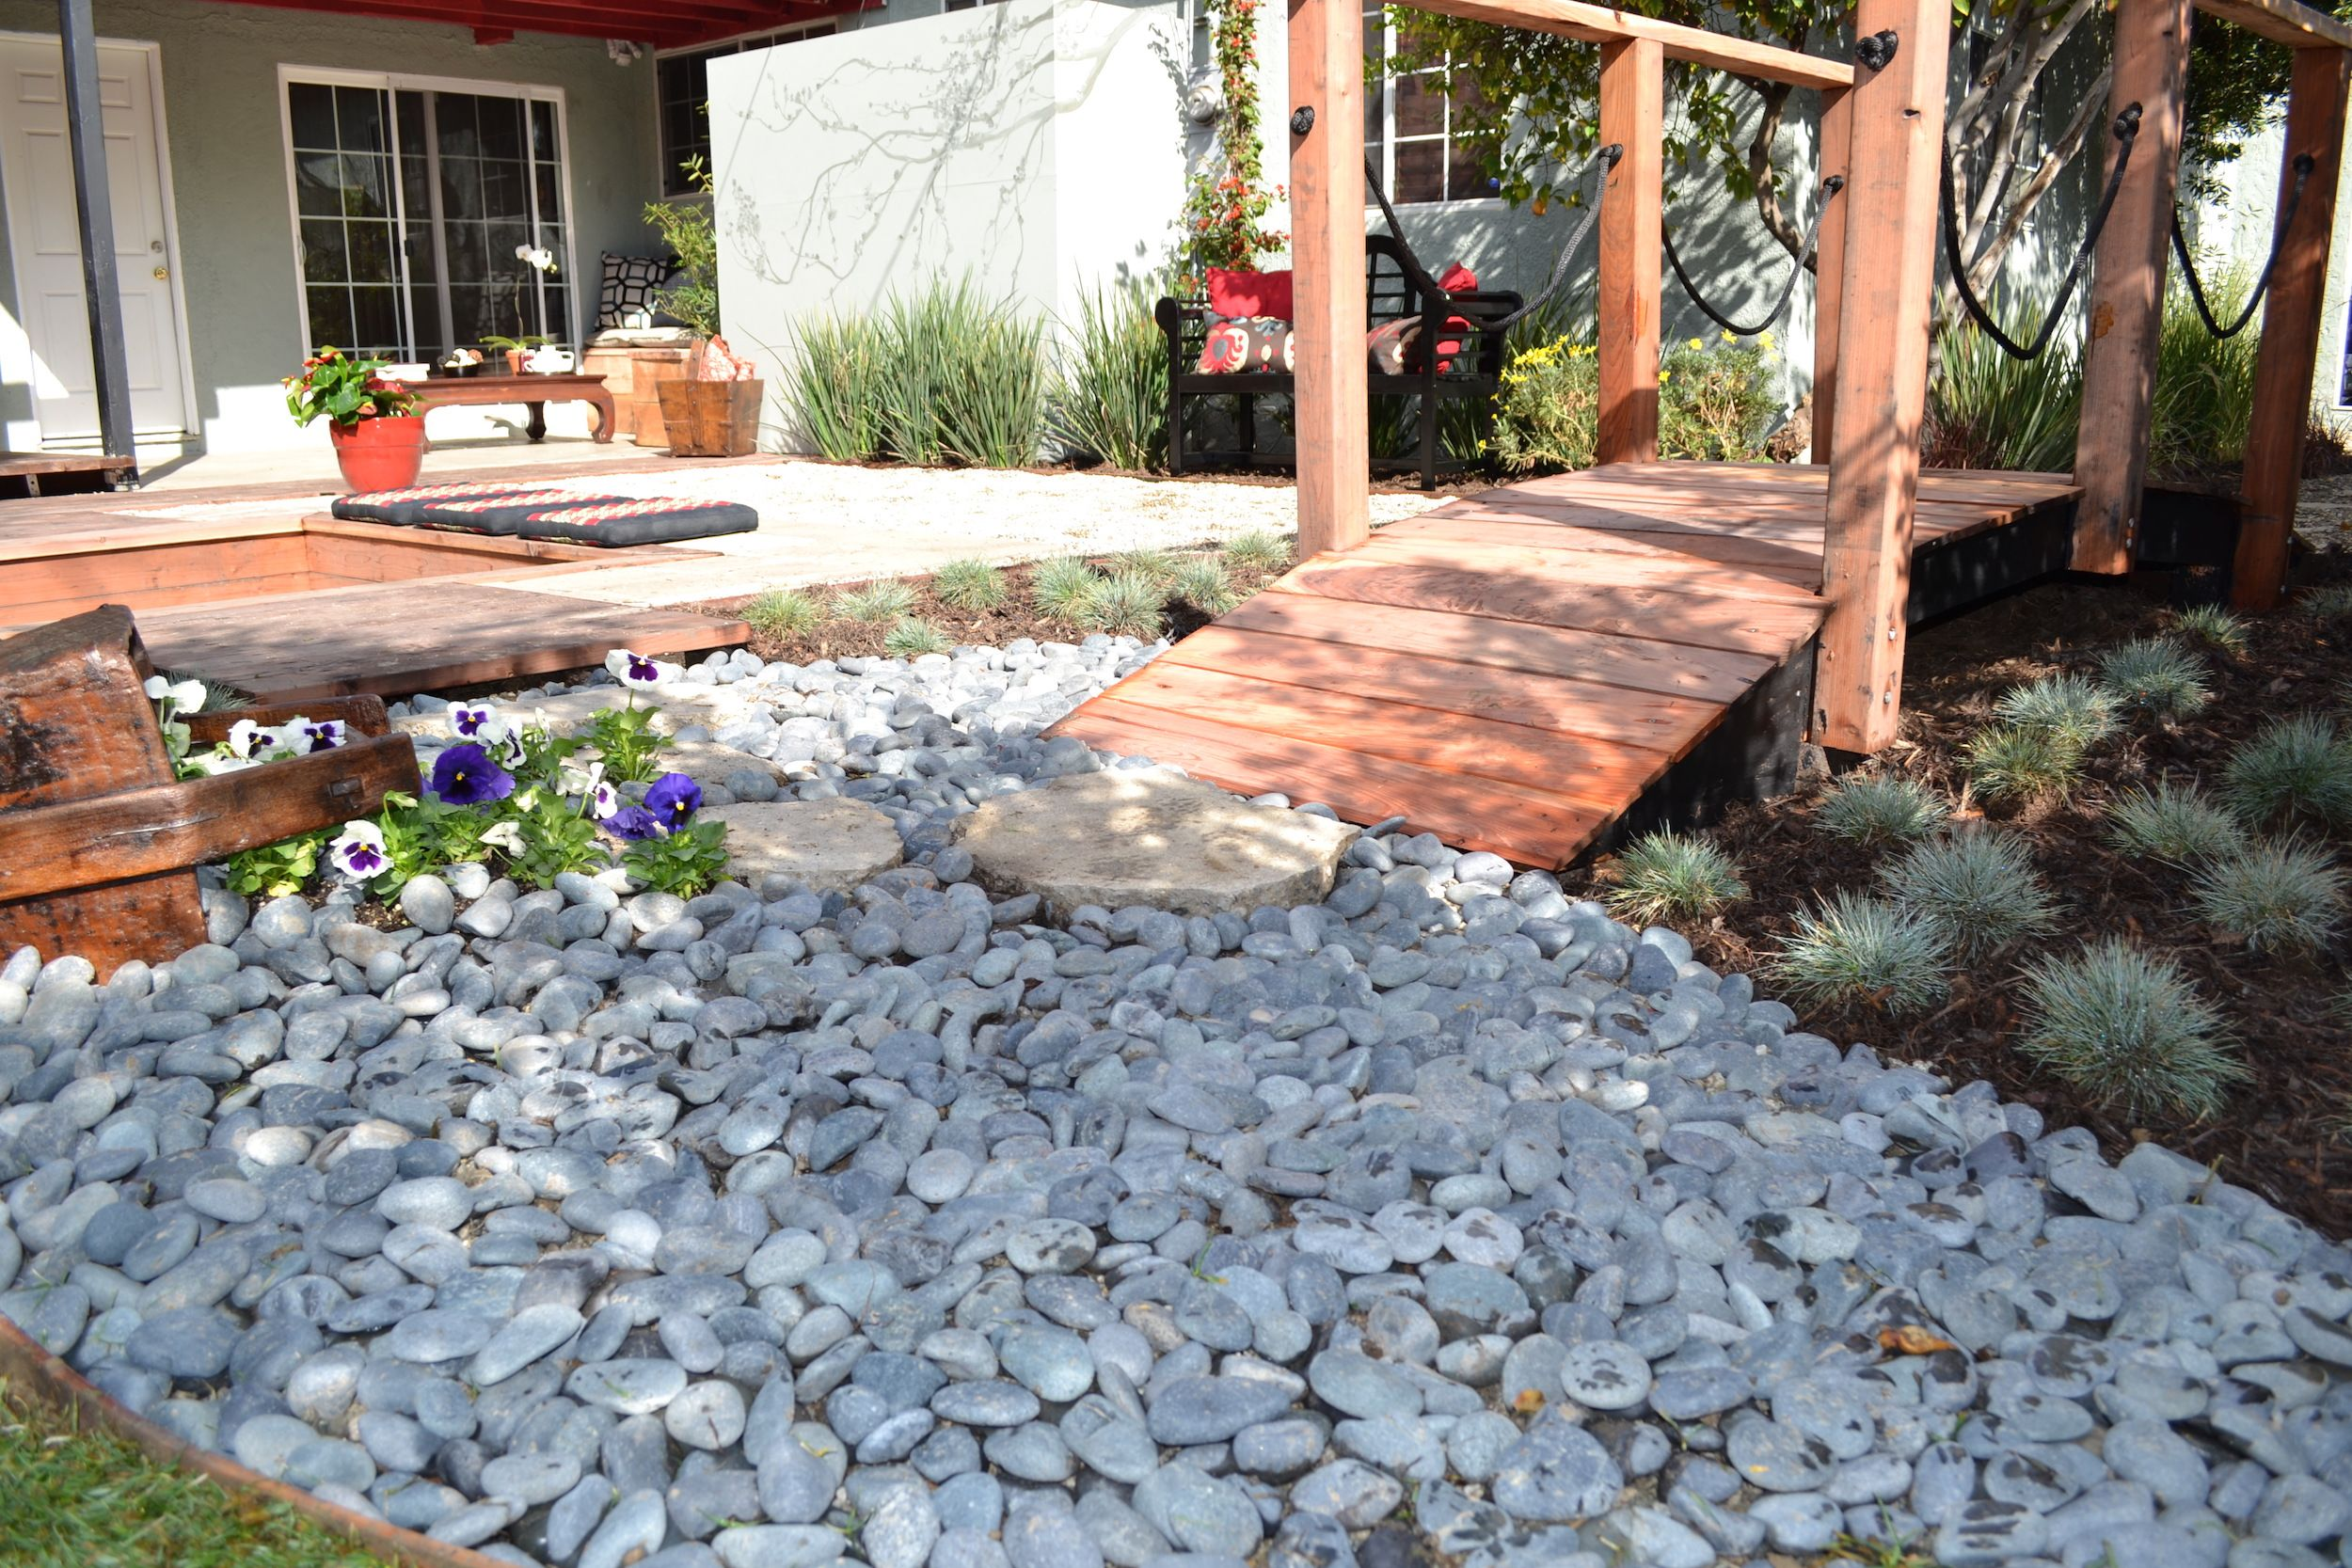 3 Landscaping Ideas For A Low-Maintenance Yard